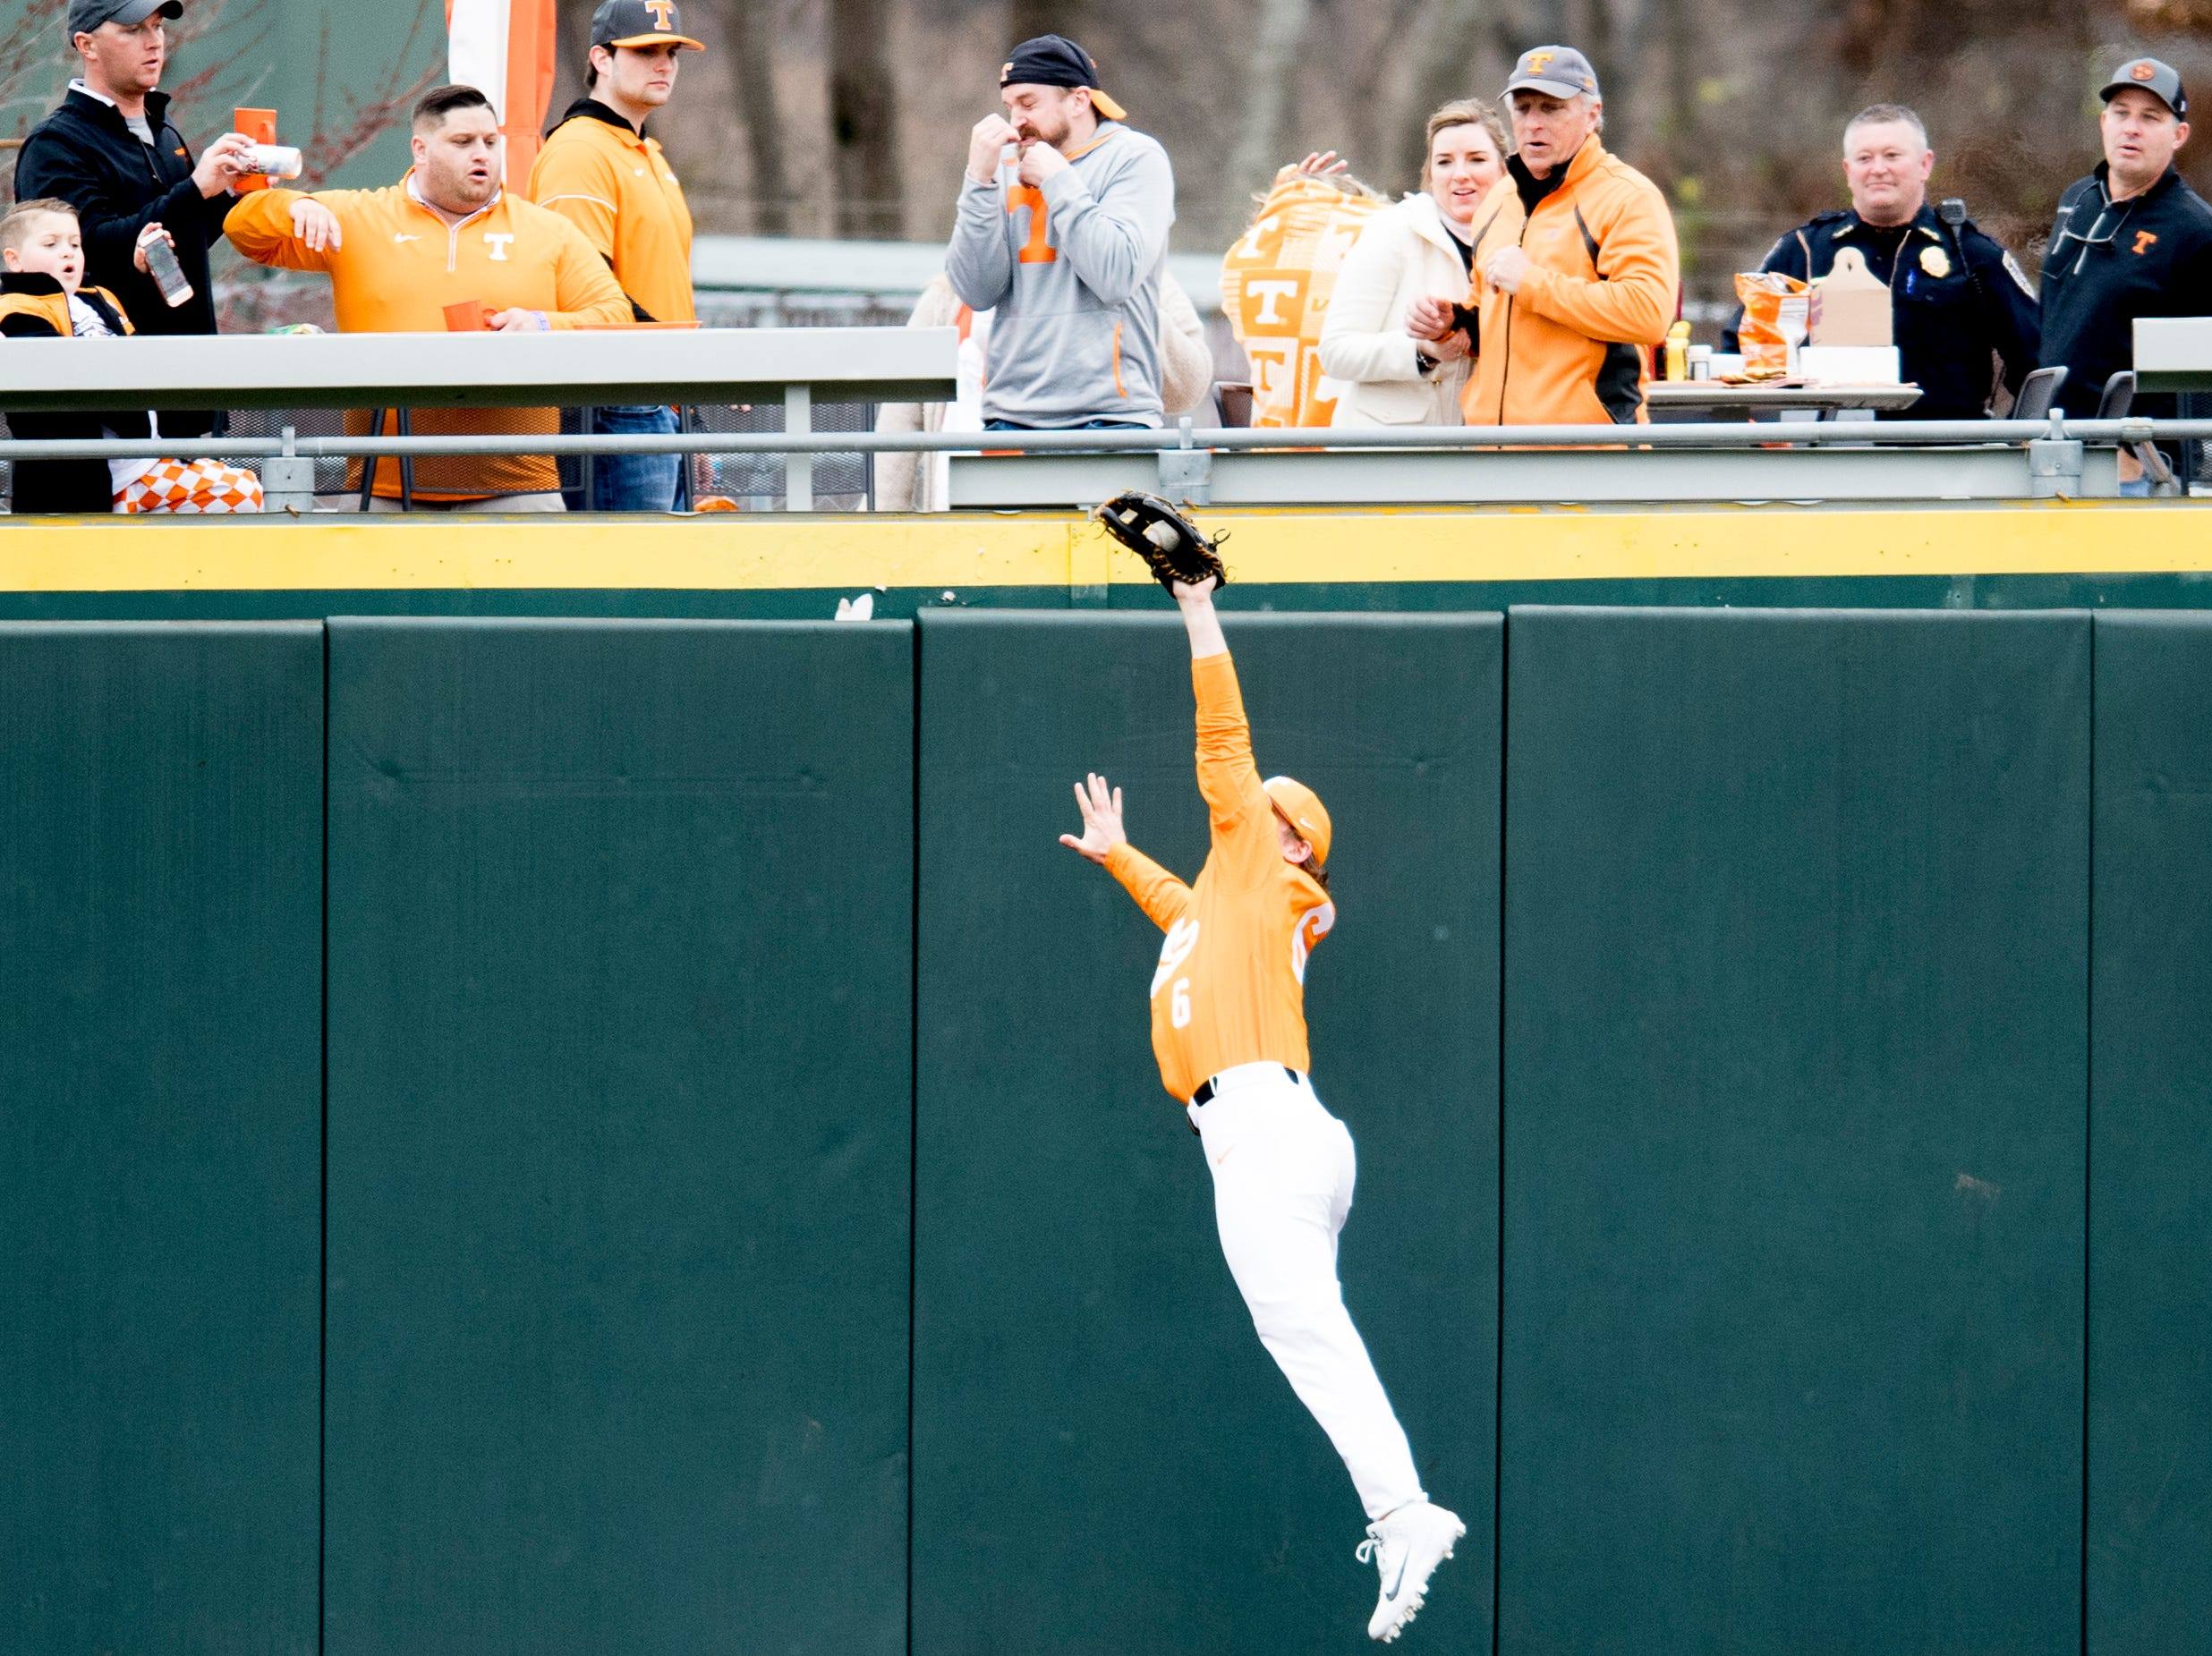 Tennessee outfielder Evan Russell (6) catches a hit into far left field during a Tennessee baseball home opener game against Appalachian State at Lindsey Nelson Stadium in Knoxville, Tennessee on Saturday, February 16, 2019.